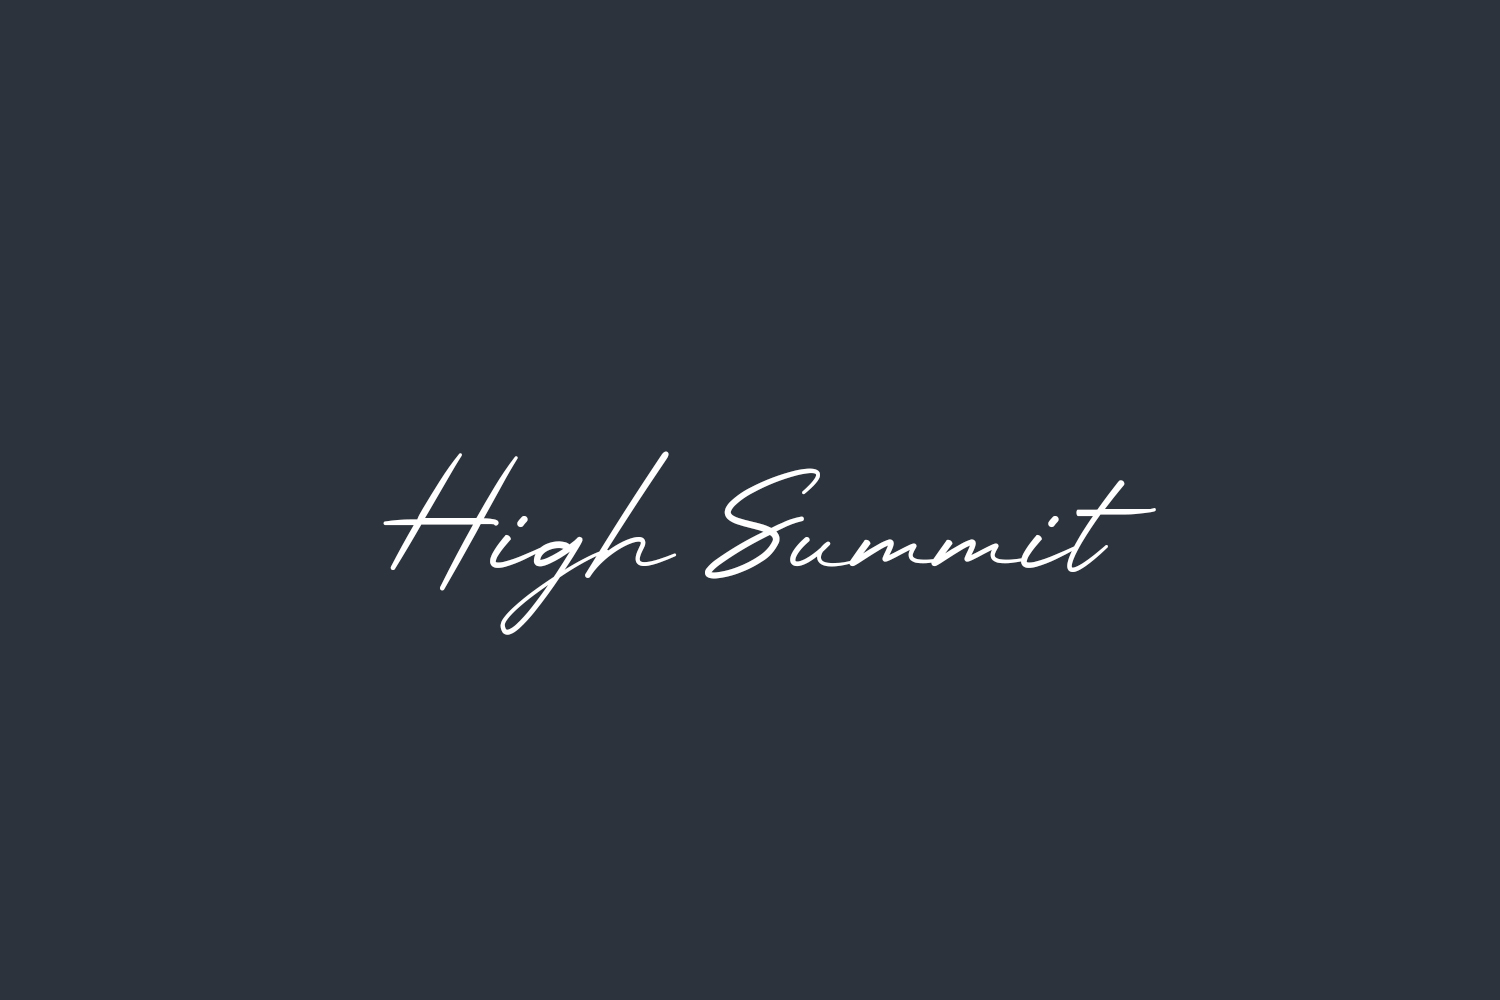 High Summit Free Font